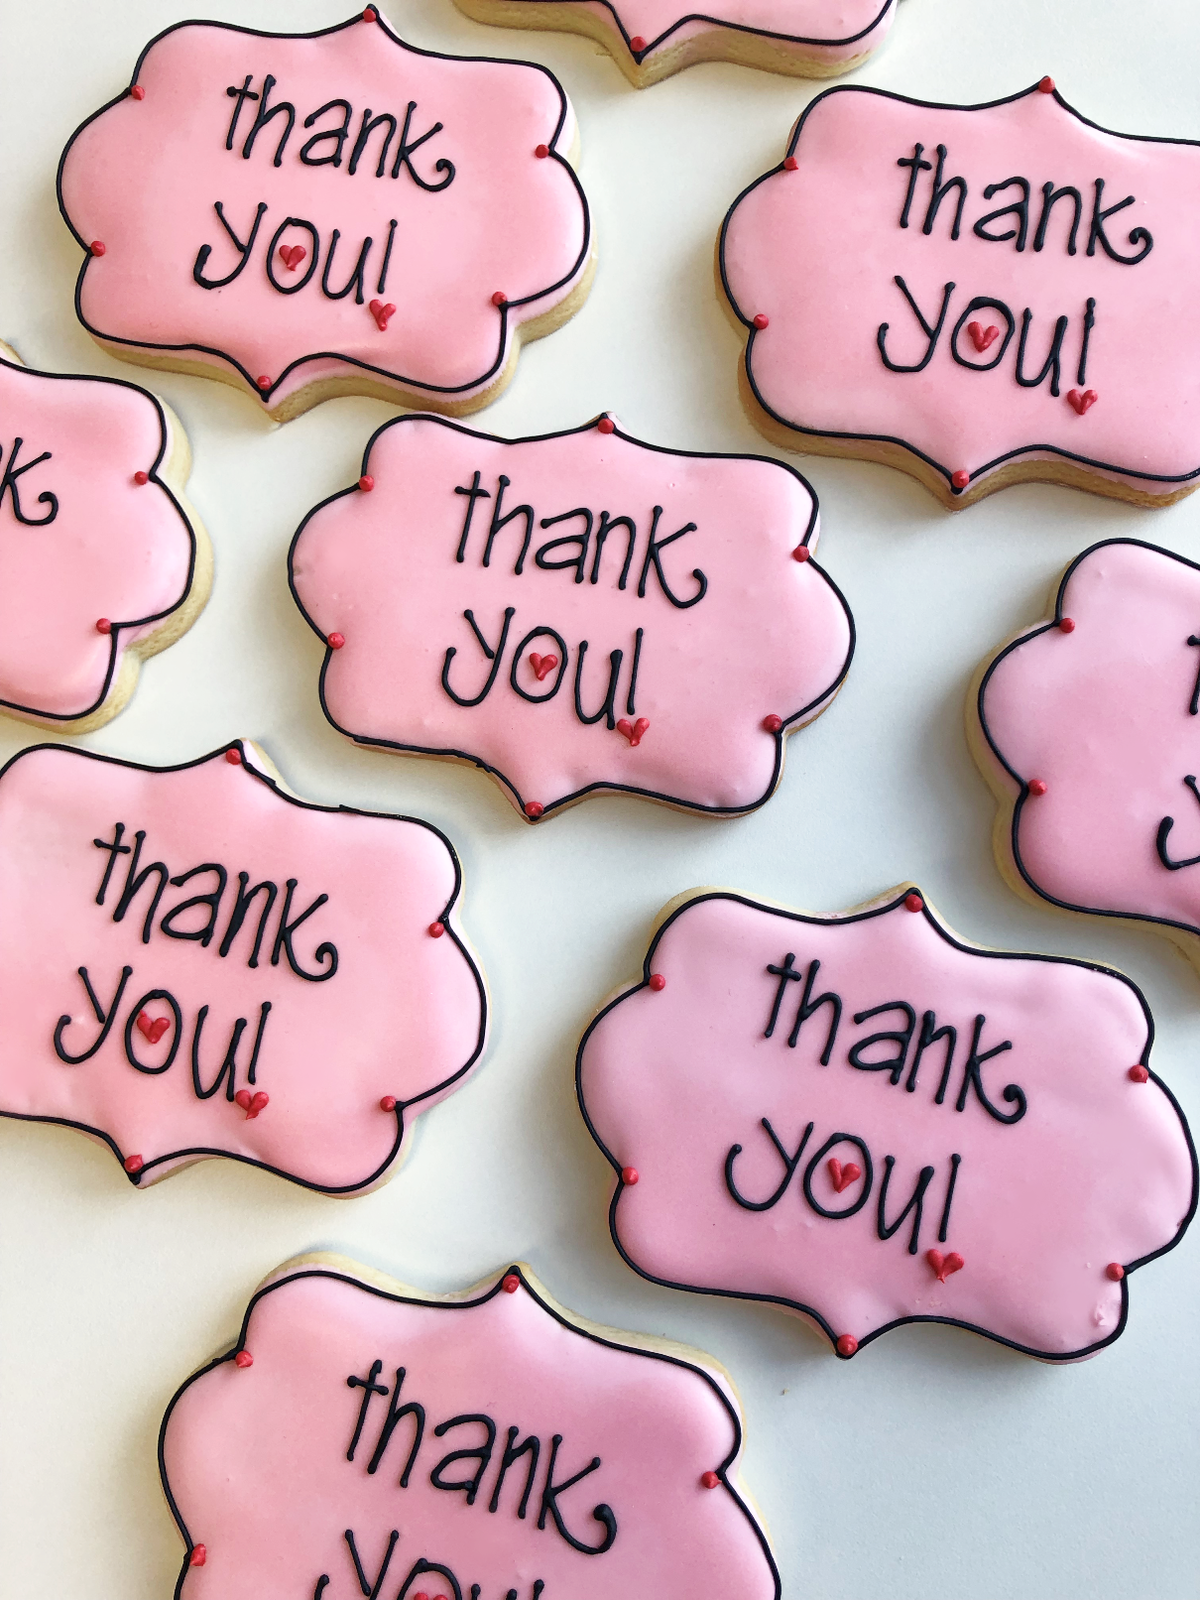 Whippt Desserts - Thank You Sugar cookies Feb 2019